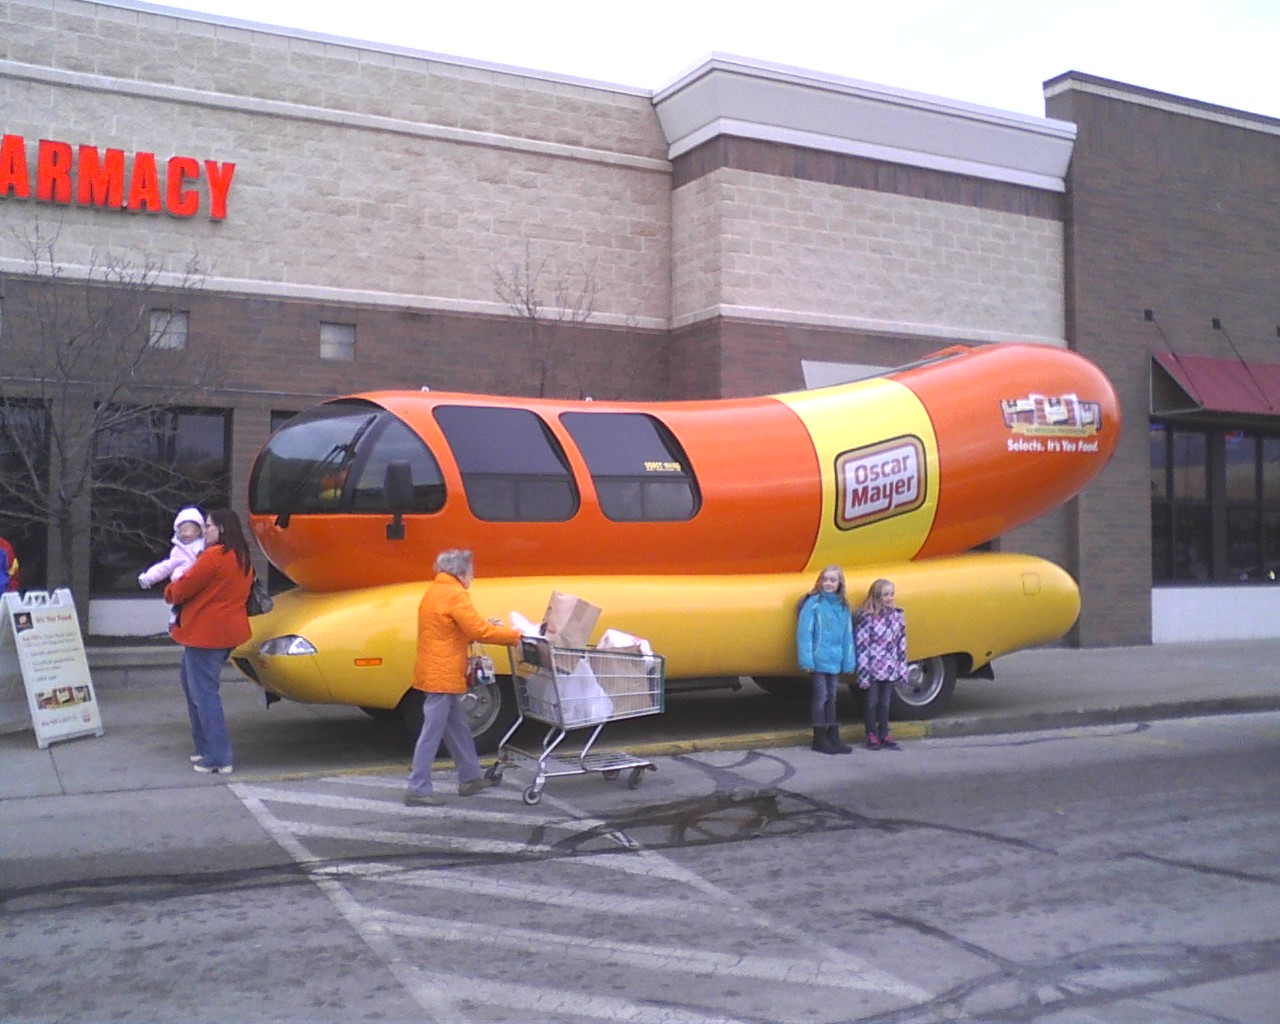 The Oscar Mayer Wienermobile Visits on oscar meyer whistle